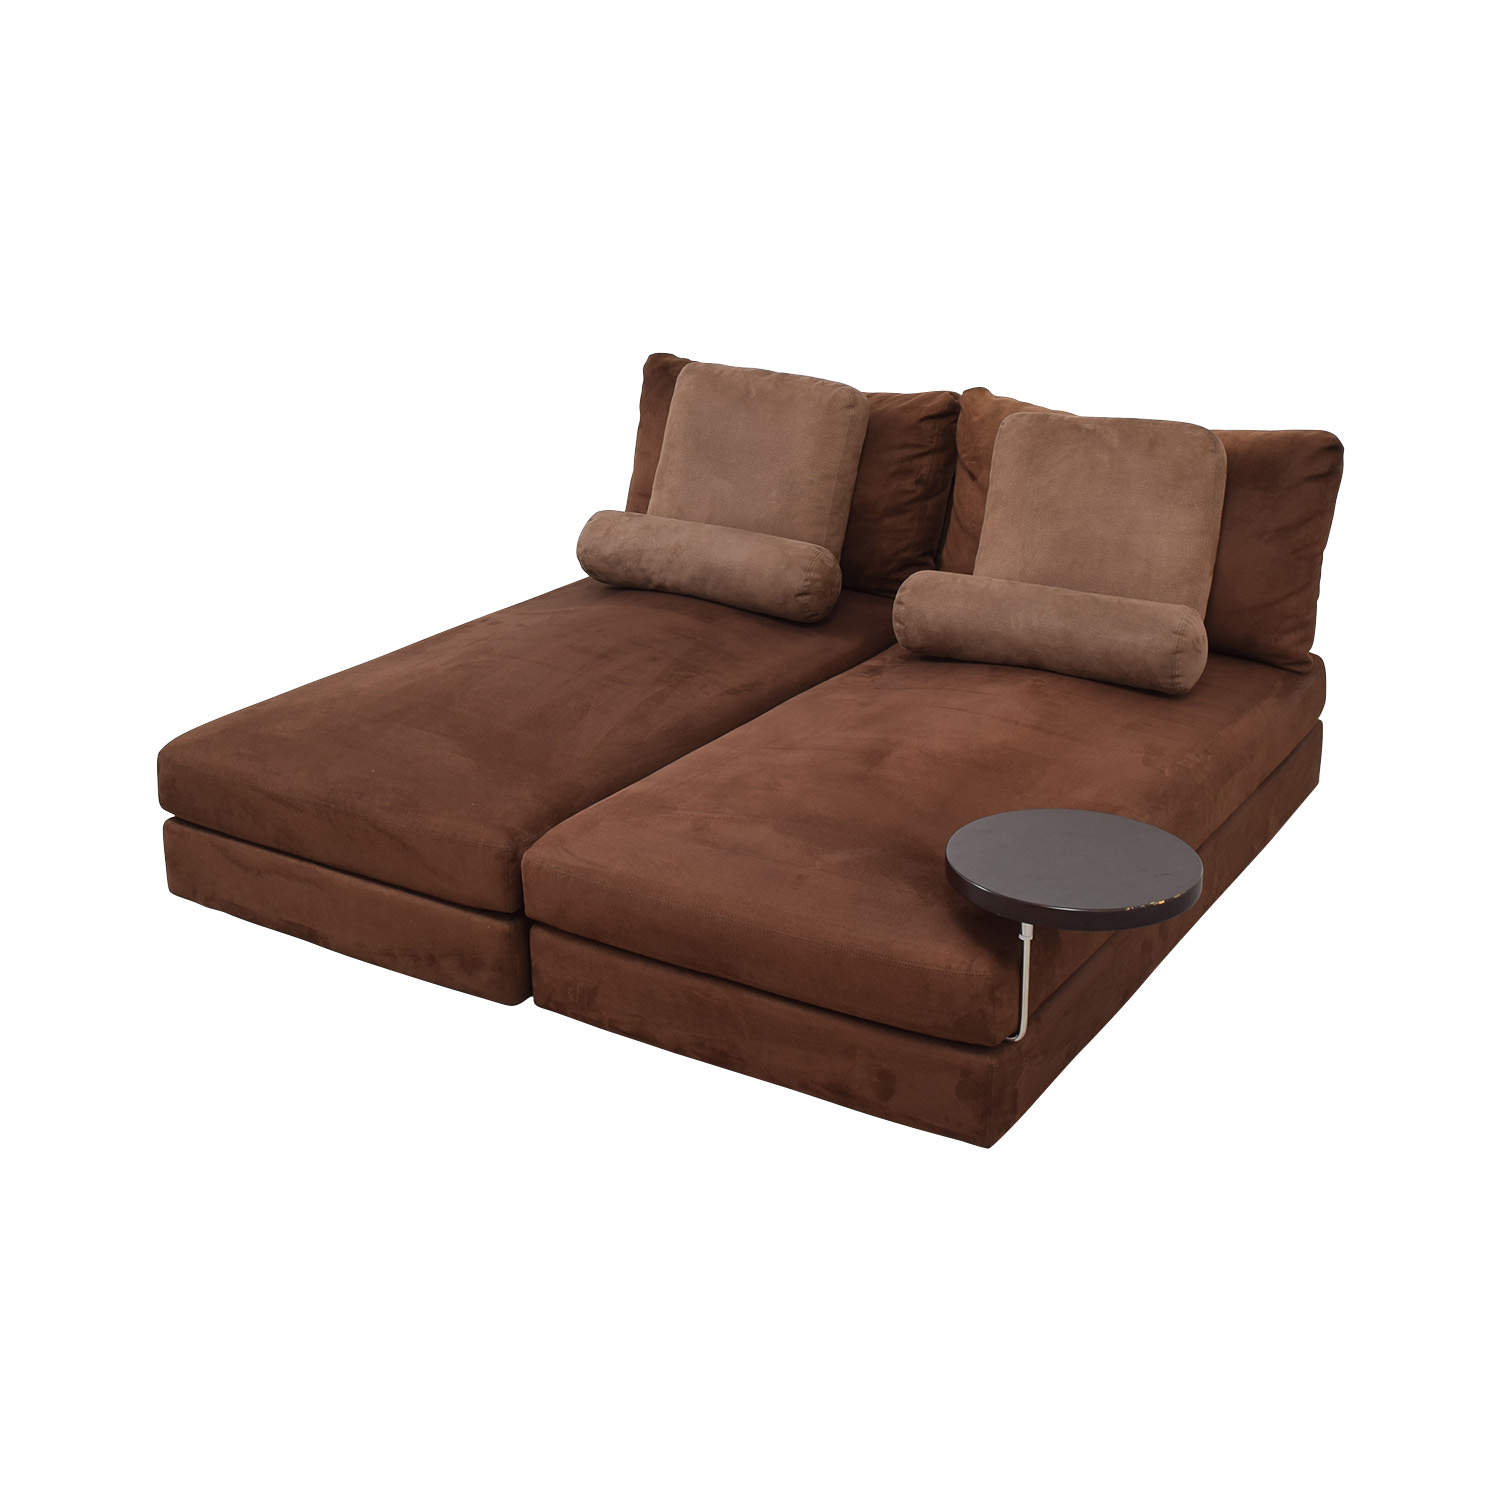 King Furniture Suede Chaise Sectional nyc